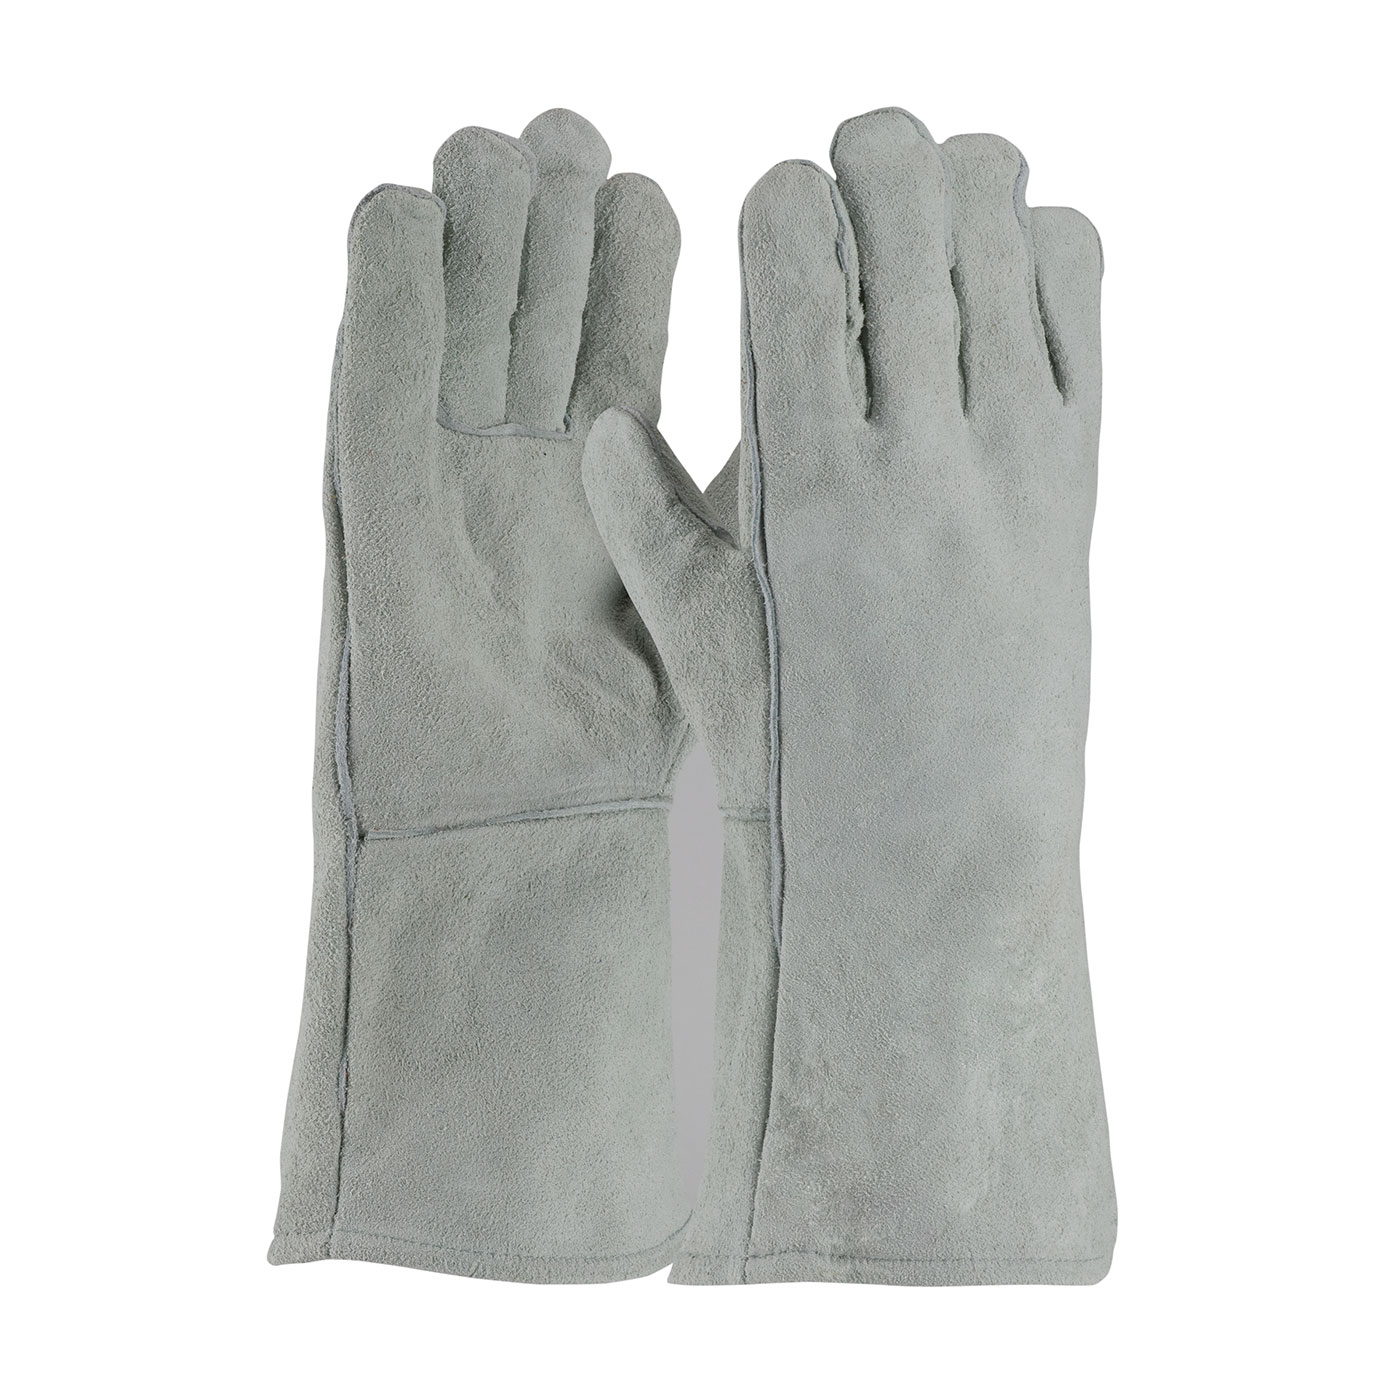 PIP 73-888 Shoulder Split Cowhide Leather Welder's Glove with Cotton Liner PID-73 888